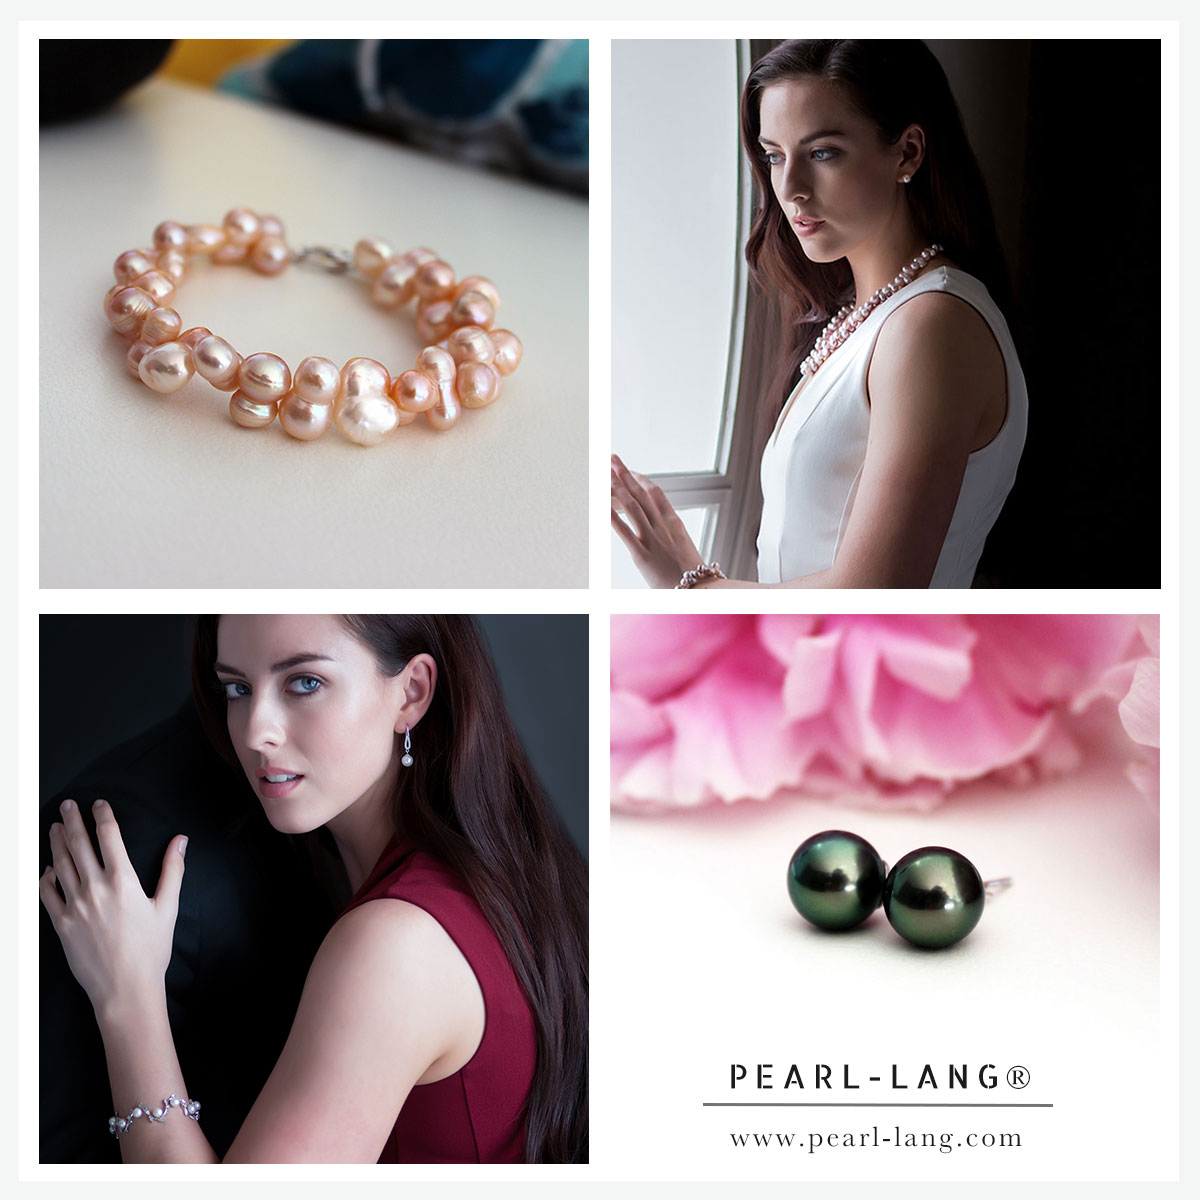 Jewellery and Pearls by Pearl-Lang